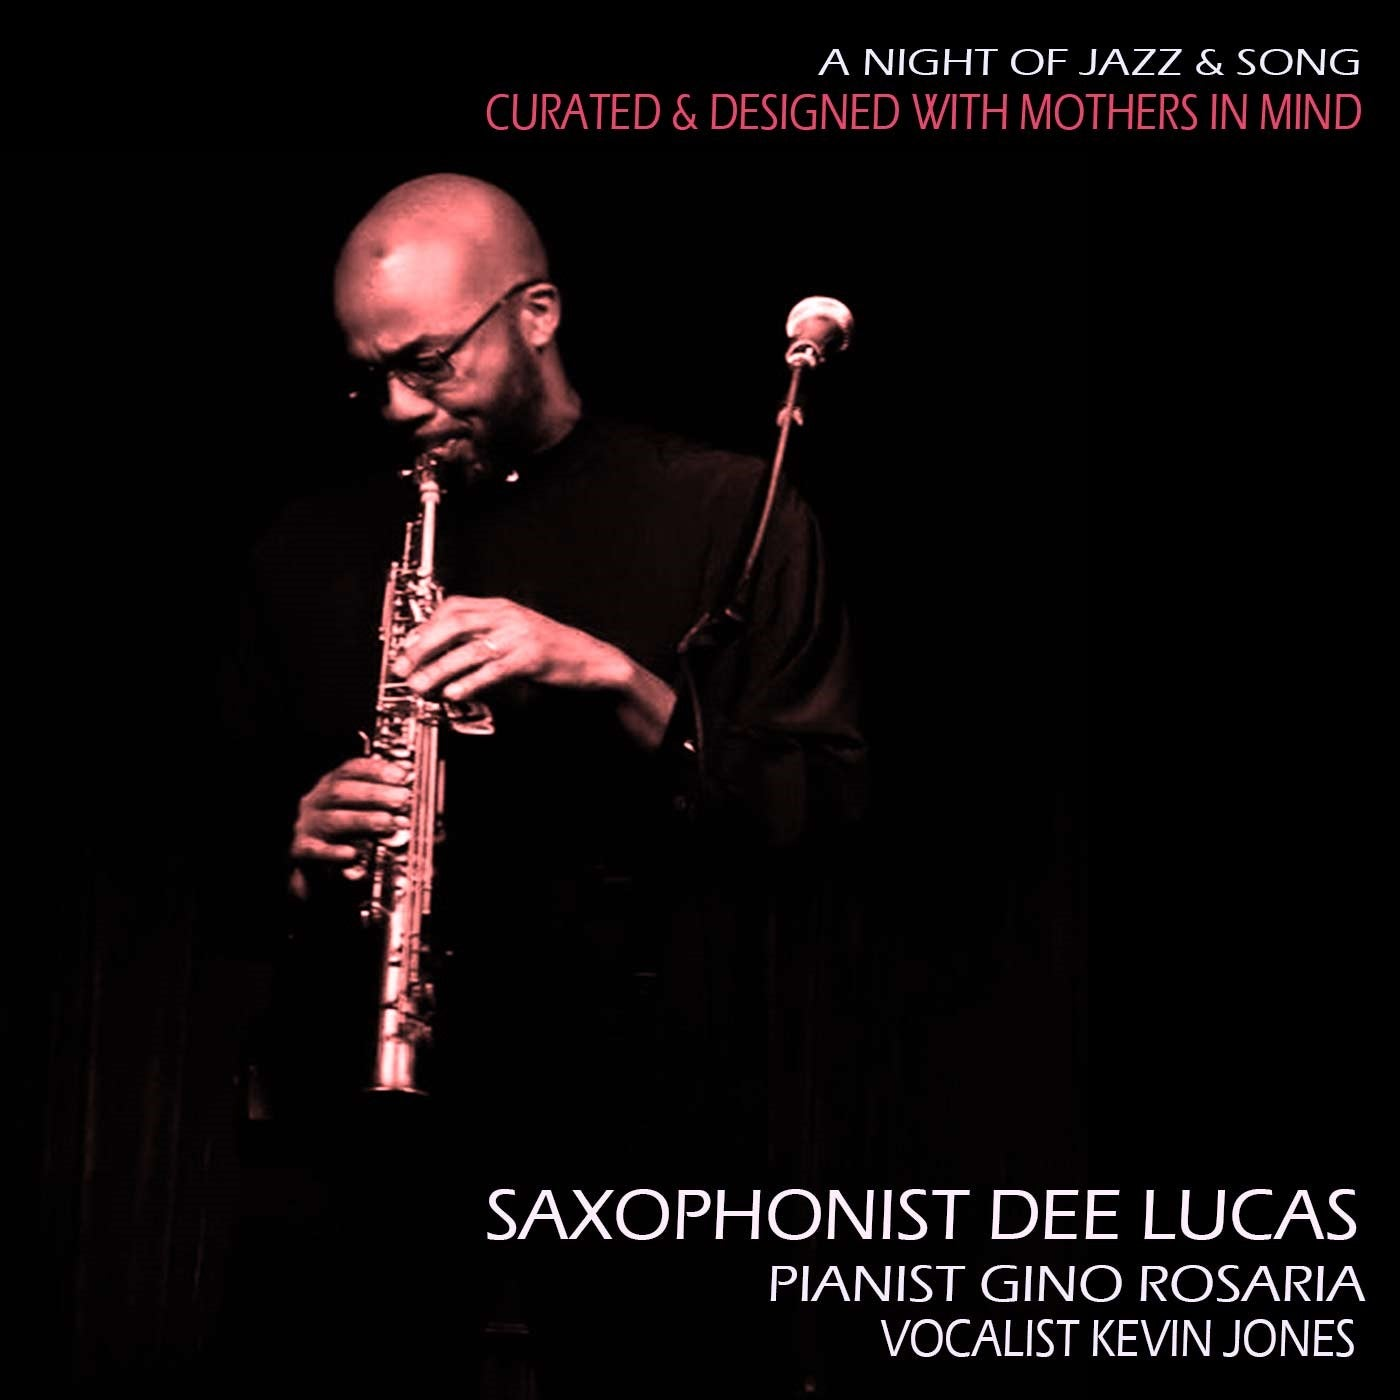 A Night of Jazz & Song - Saxophonist Dee Lucas with Pianist Gino Rosaria